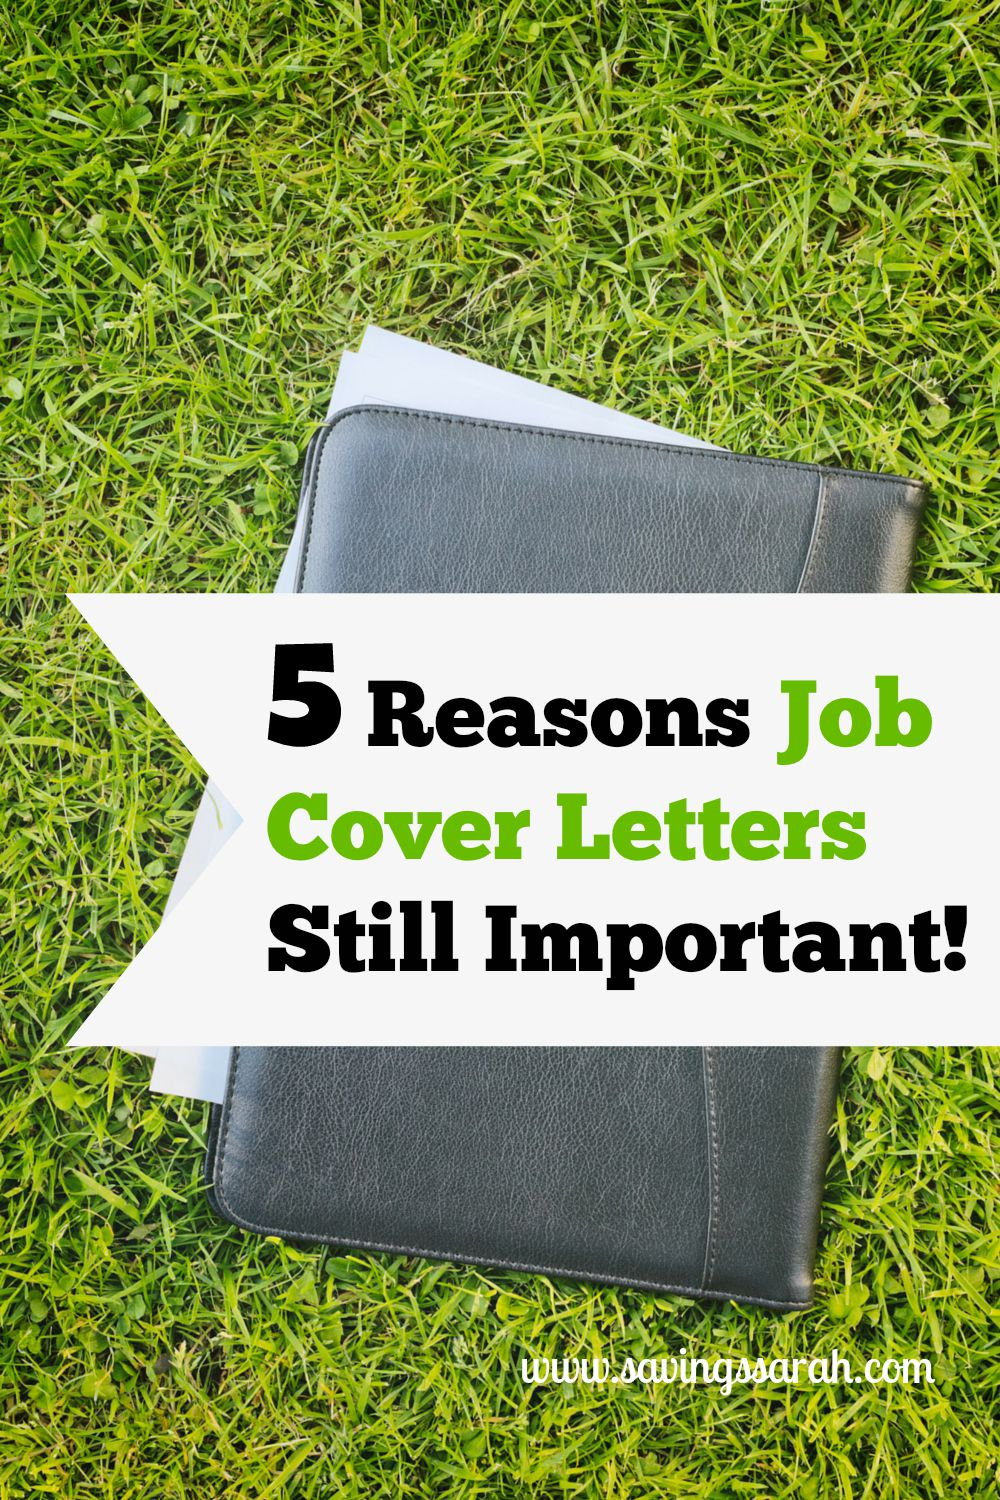 5 Reasons Job Cover Letters Still Important!